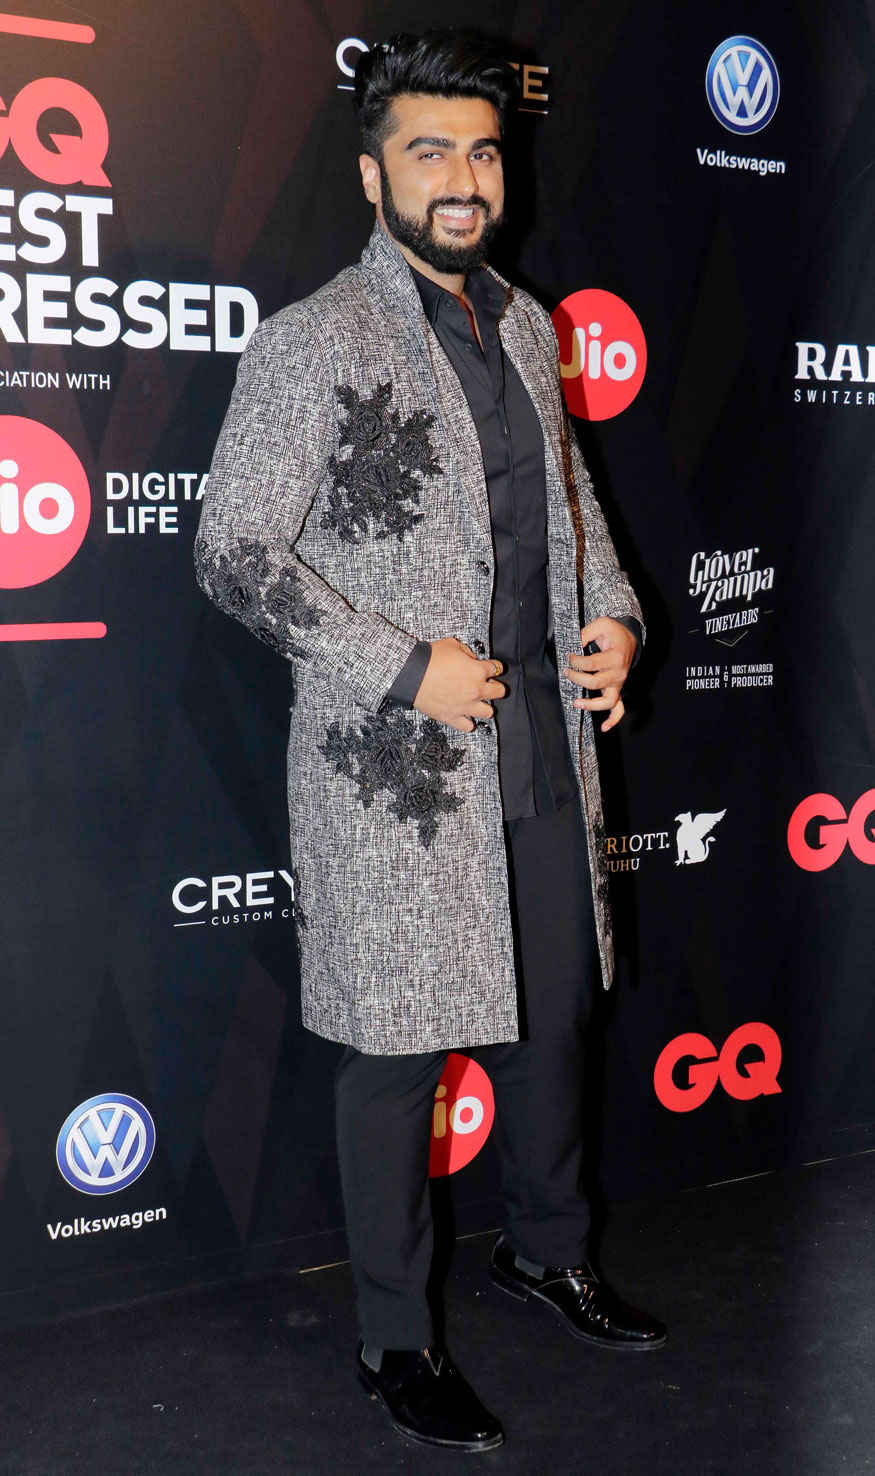 Anil Kapoor and Arjun Kapoor Attends The GQ Best Dressed Awards Event